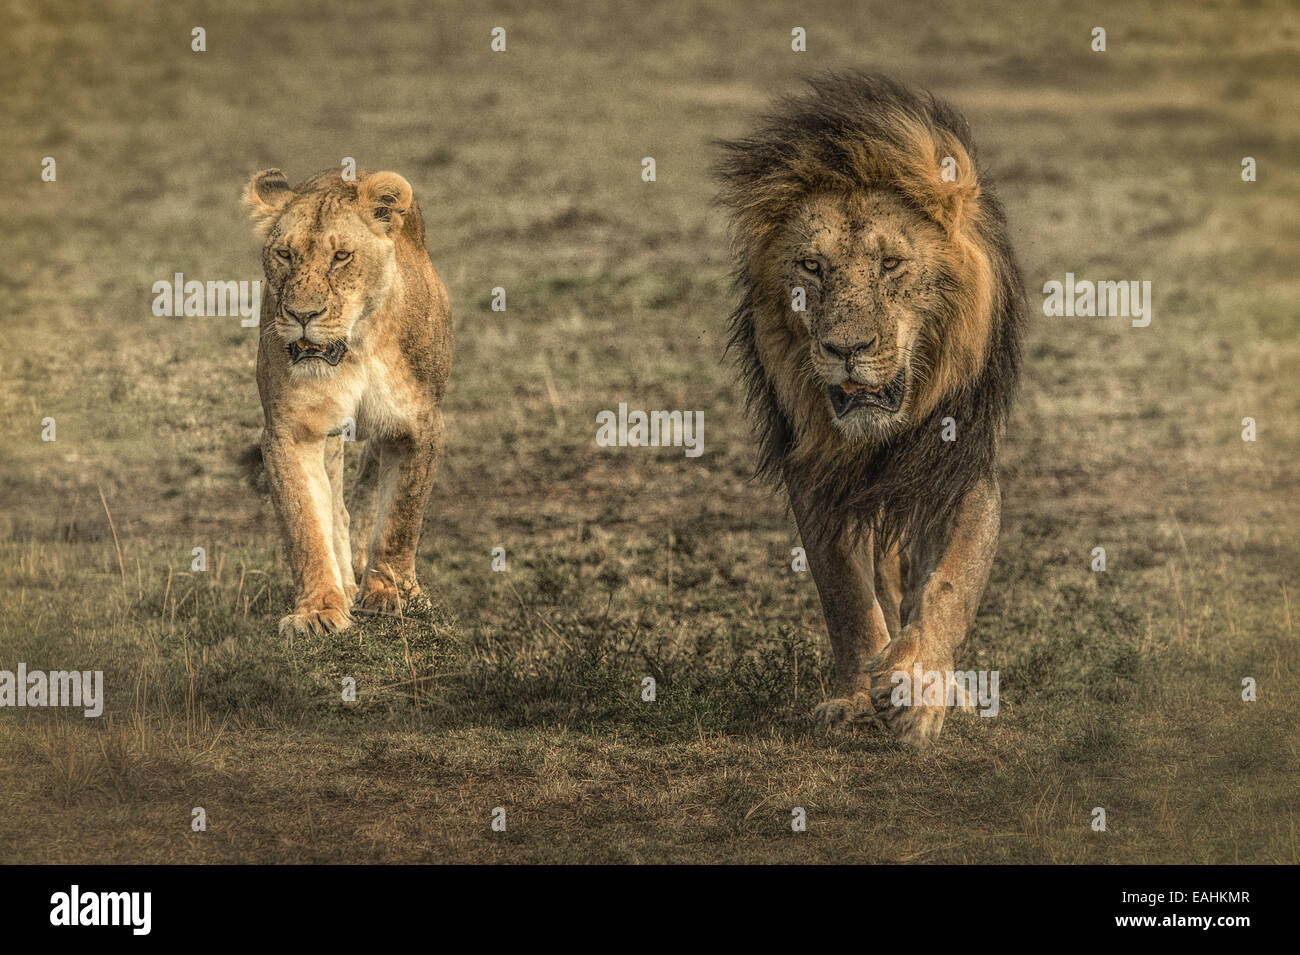 Lions walking together - photo#10